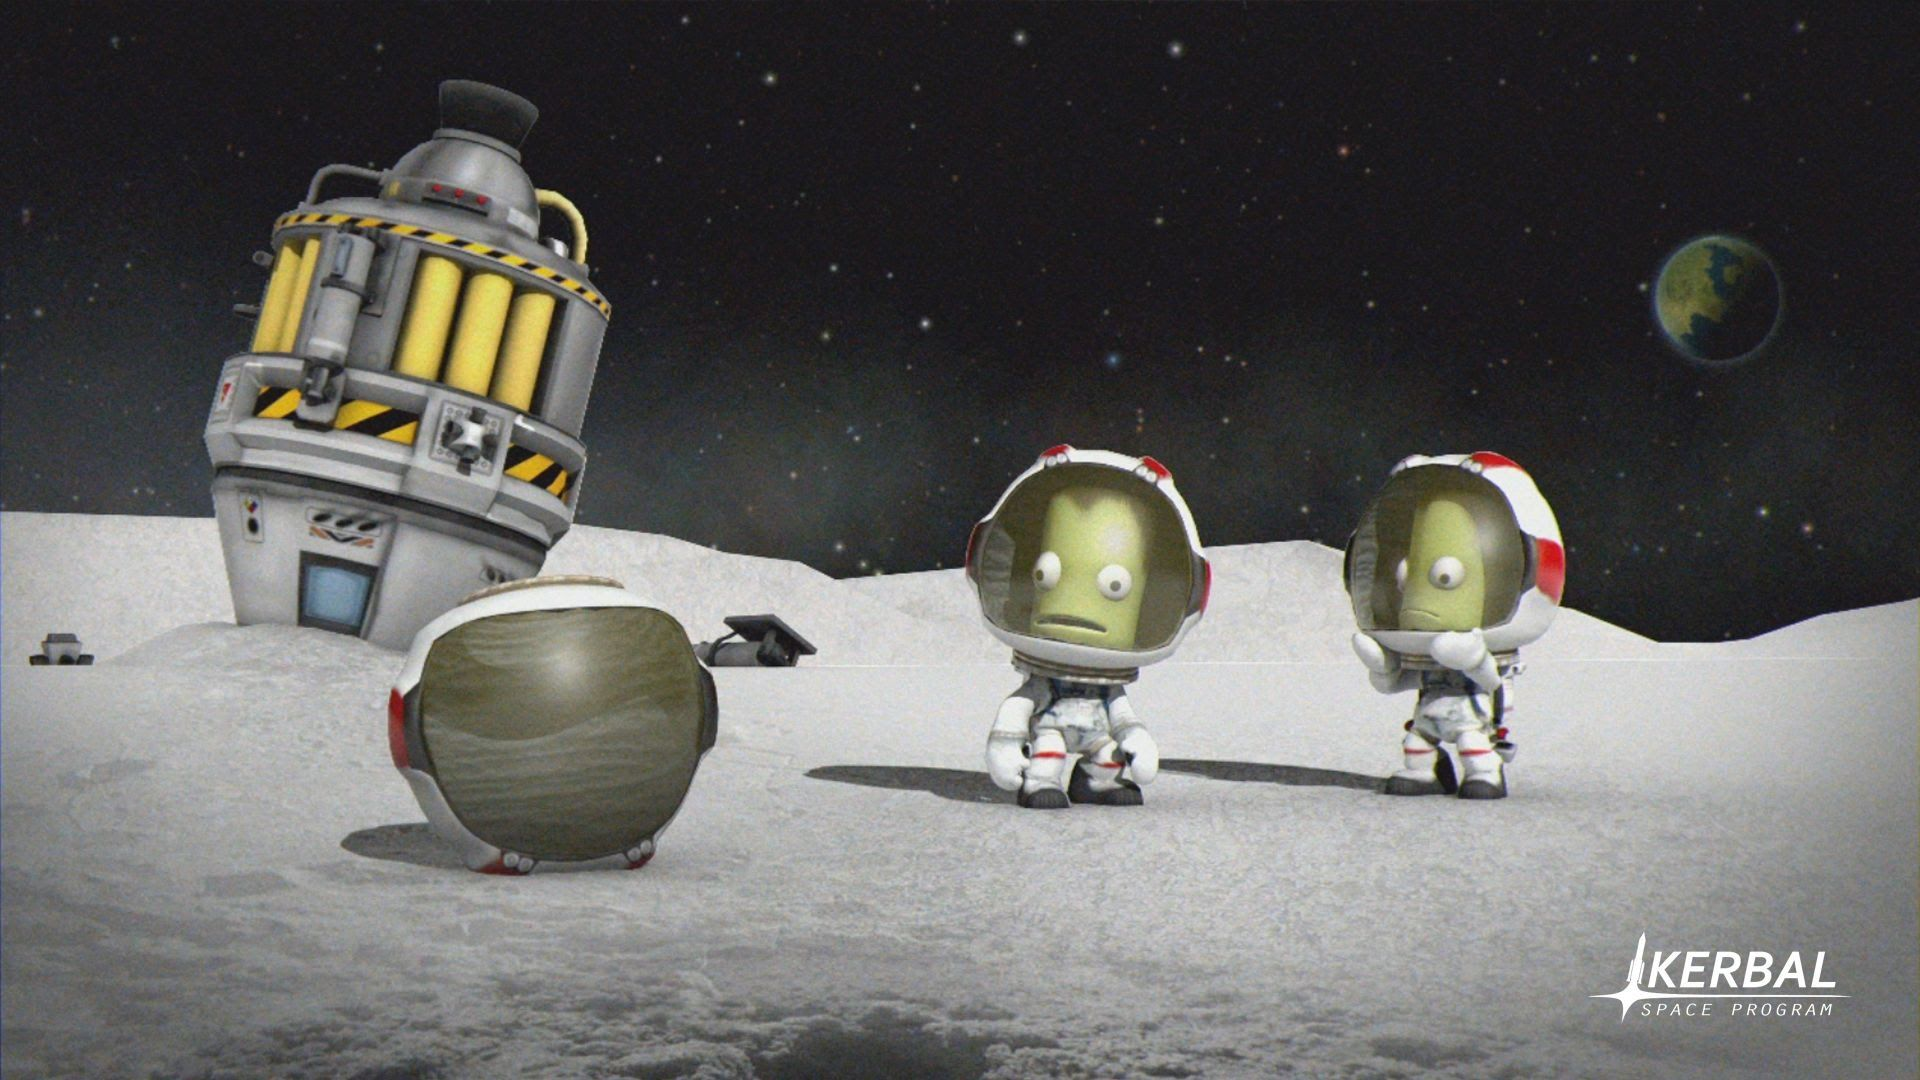 New Kerbal Space Program Expansion Free For Early